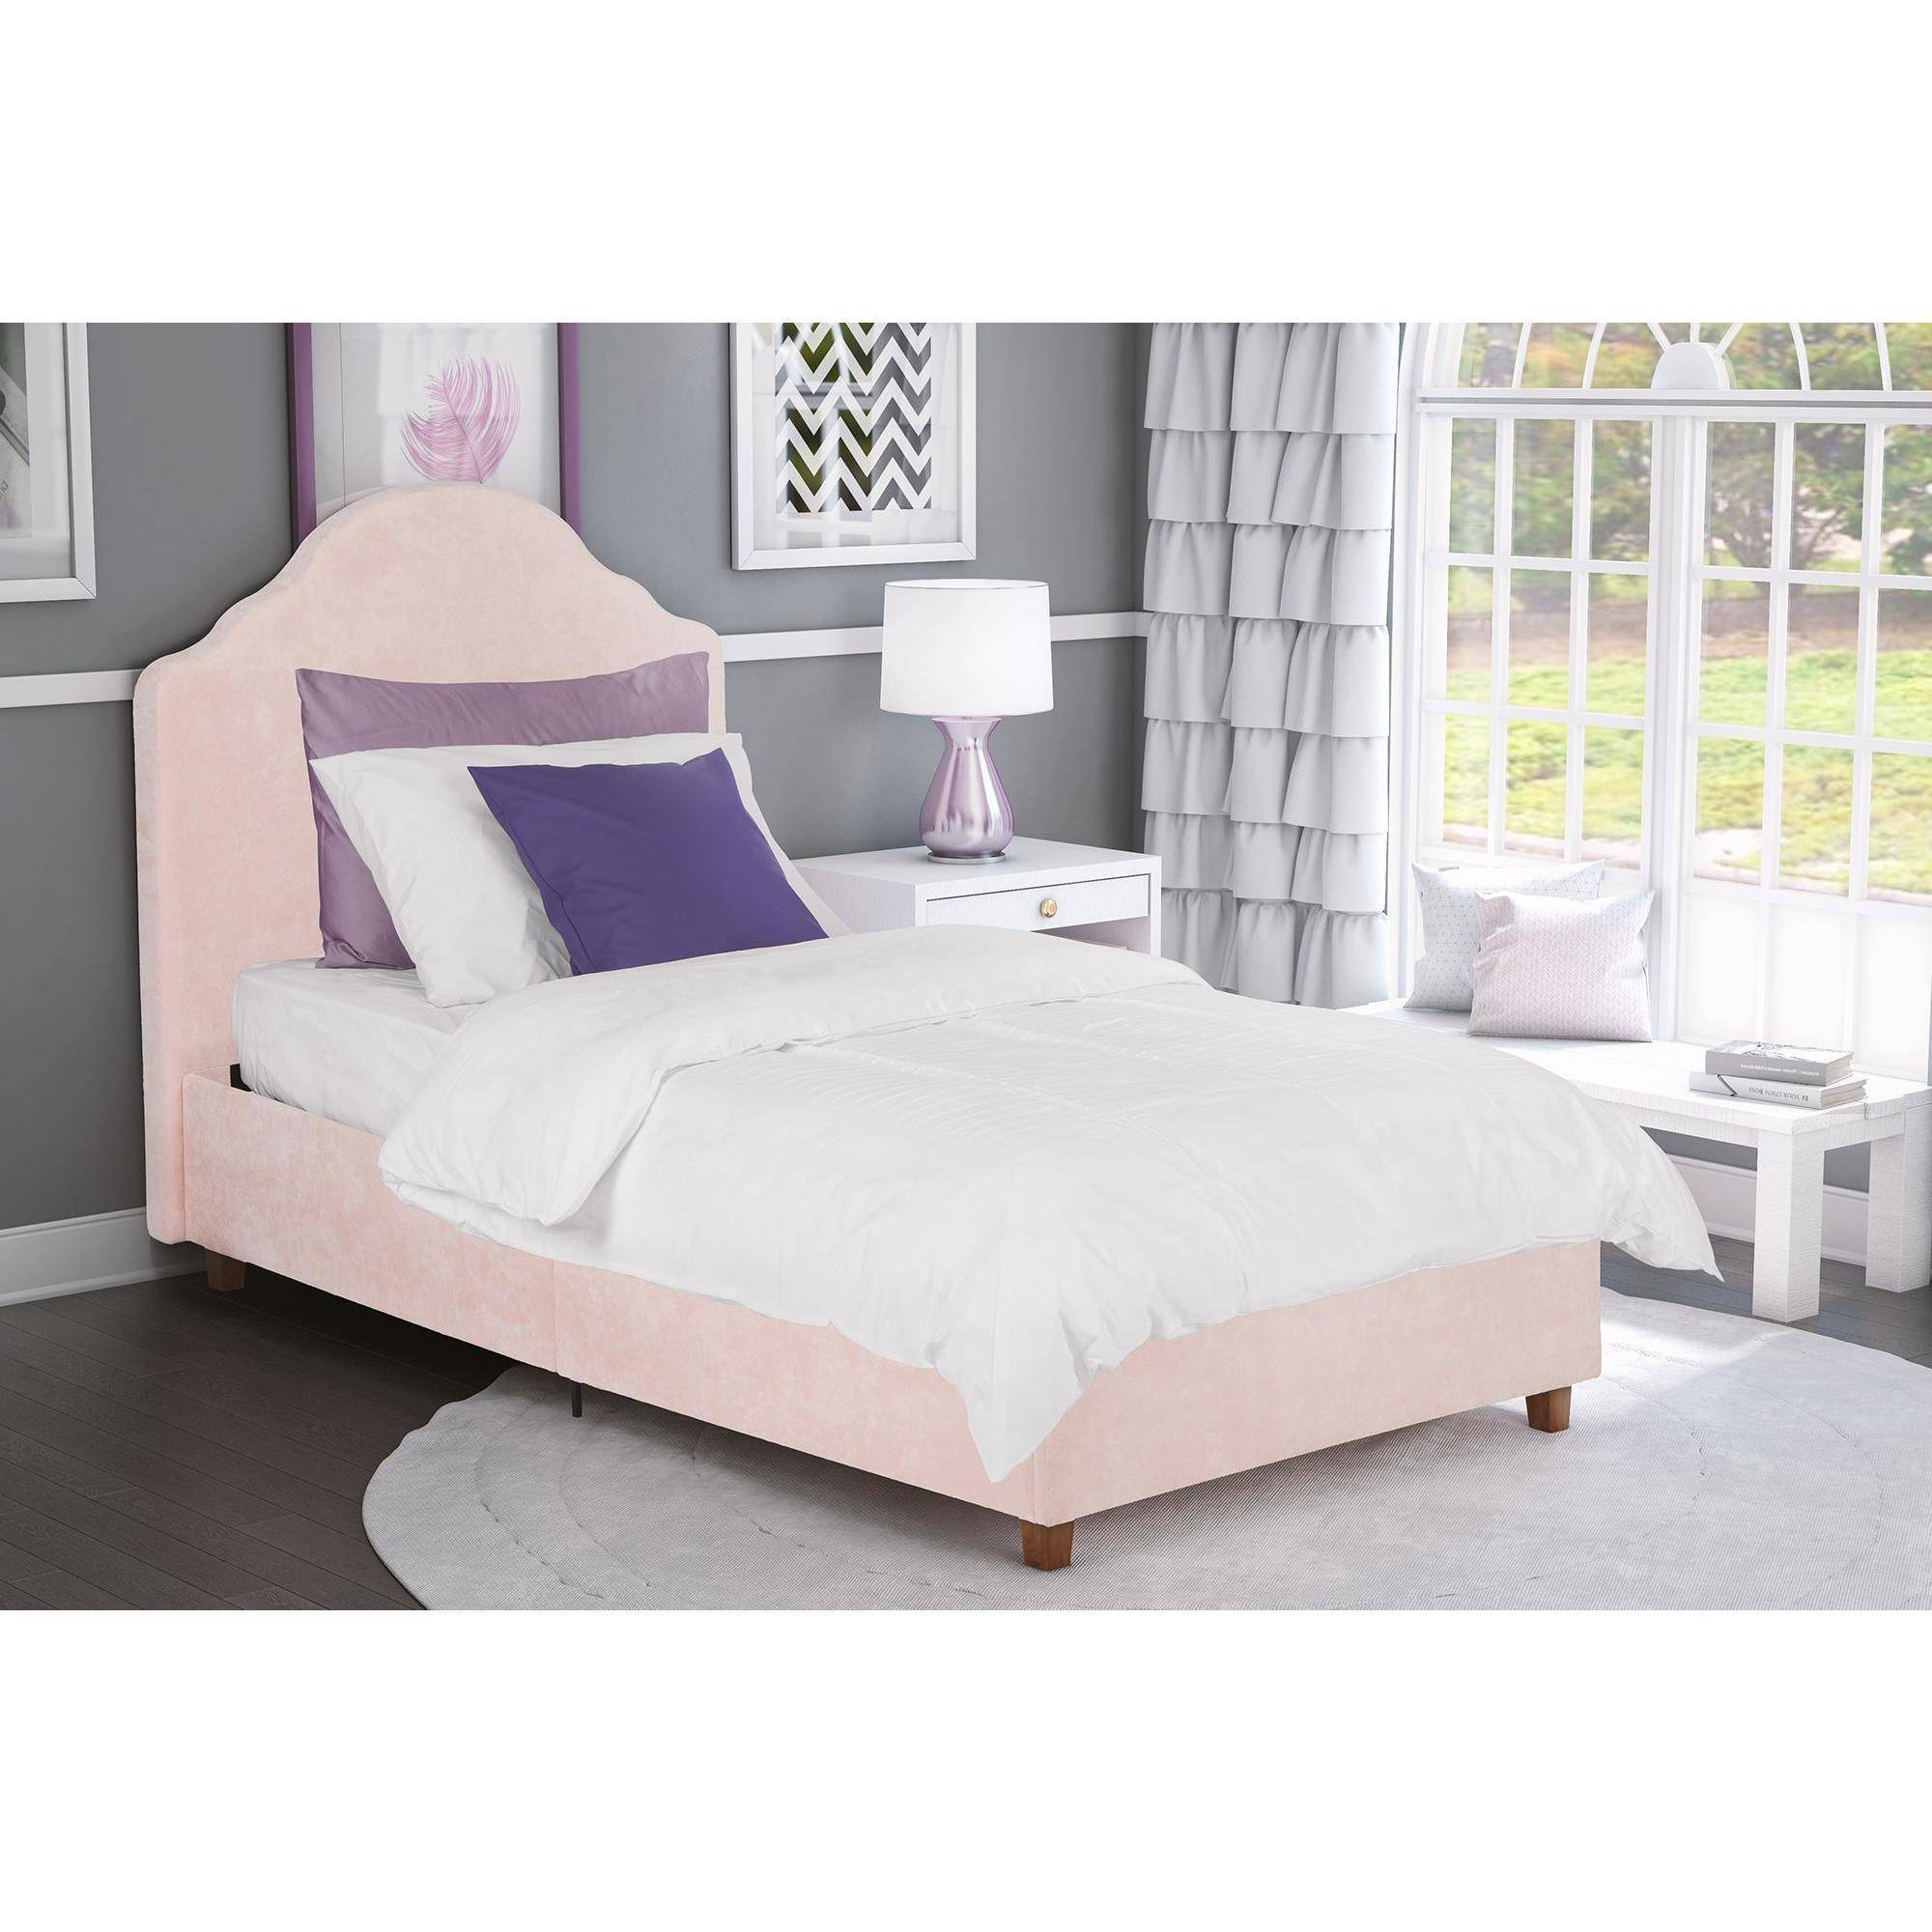 DHP Savannah Twin Upholstered Bed, Pink